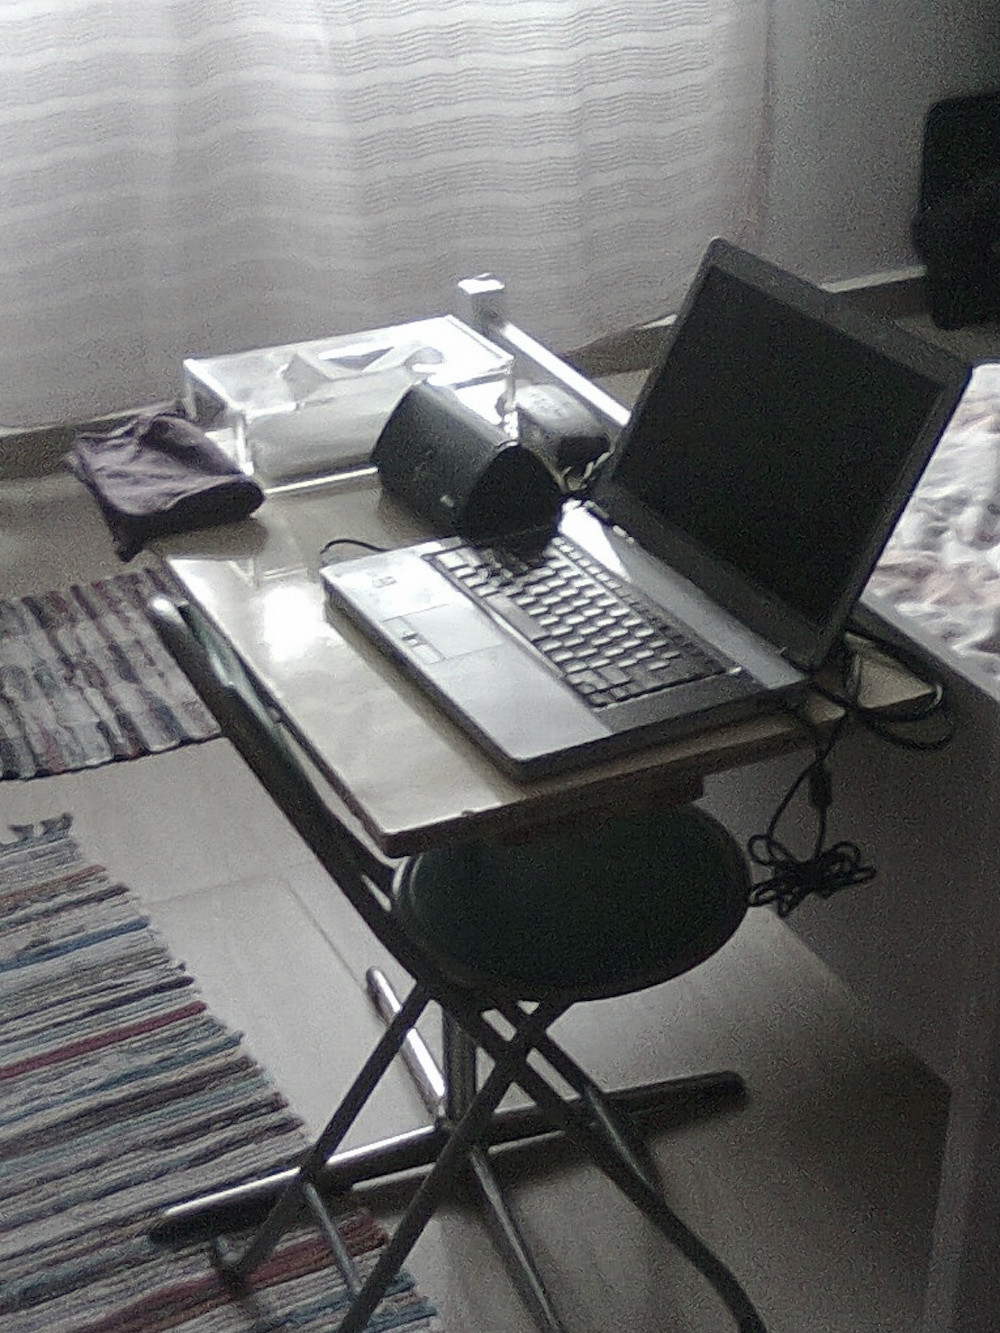 My desk in 2011: a very small table sitting at the bottom edge of my old bed, an old laptop with a broken speaker, and an external speaker sitting next to it. The chair was a foldable beach chair.